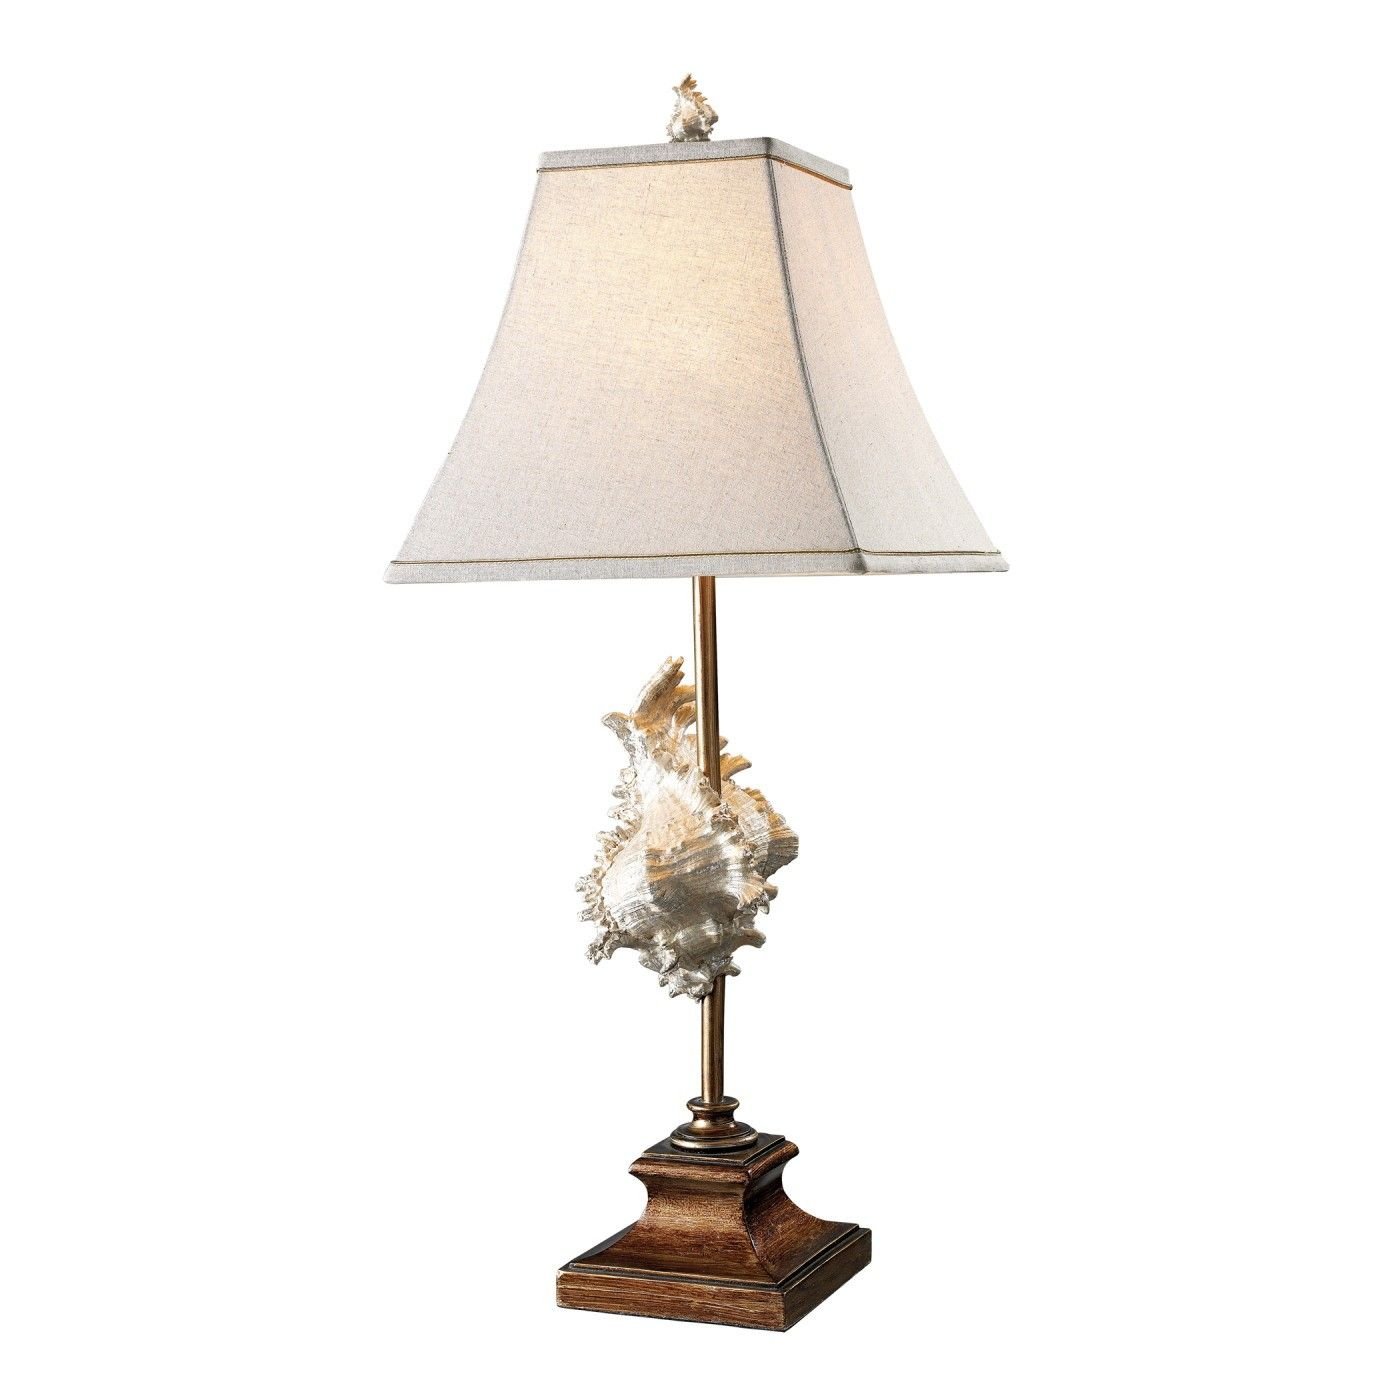 Coastal Chic Delray Conch Shell 30 Tall Table Lamp In Balinese Bronze And White Finish With Cream Natural Linen Coastalliv Bronze Table Lamp Table Lamp Lamp